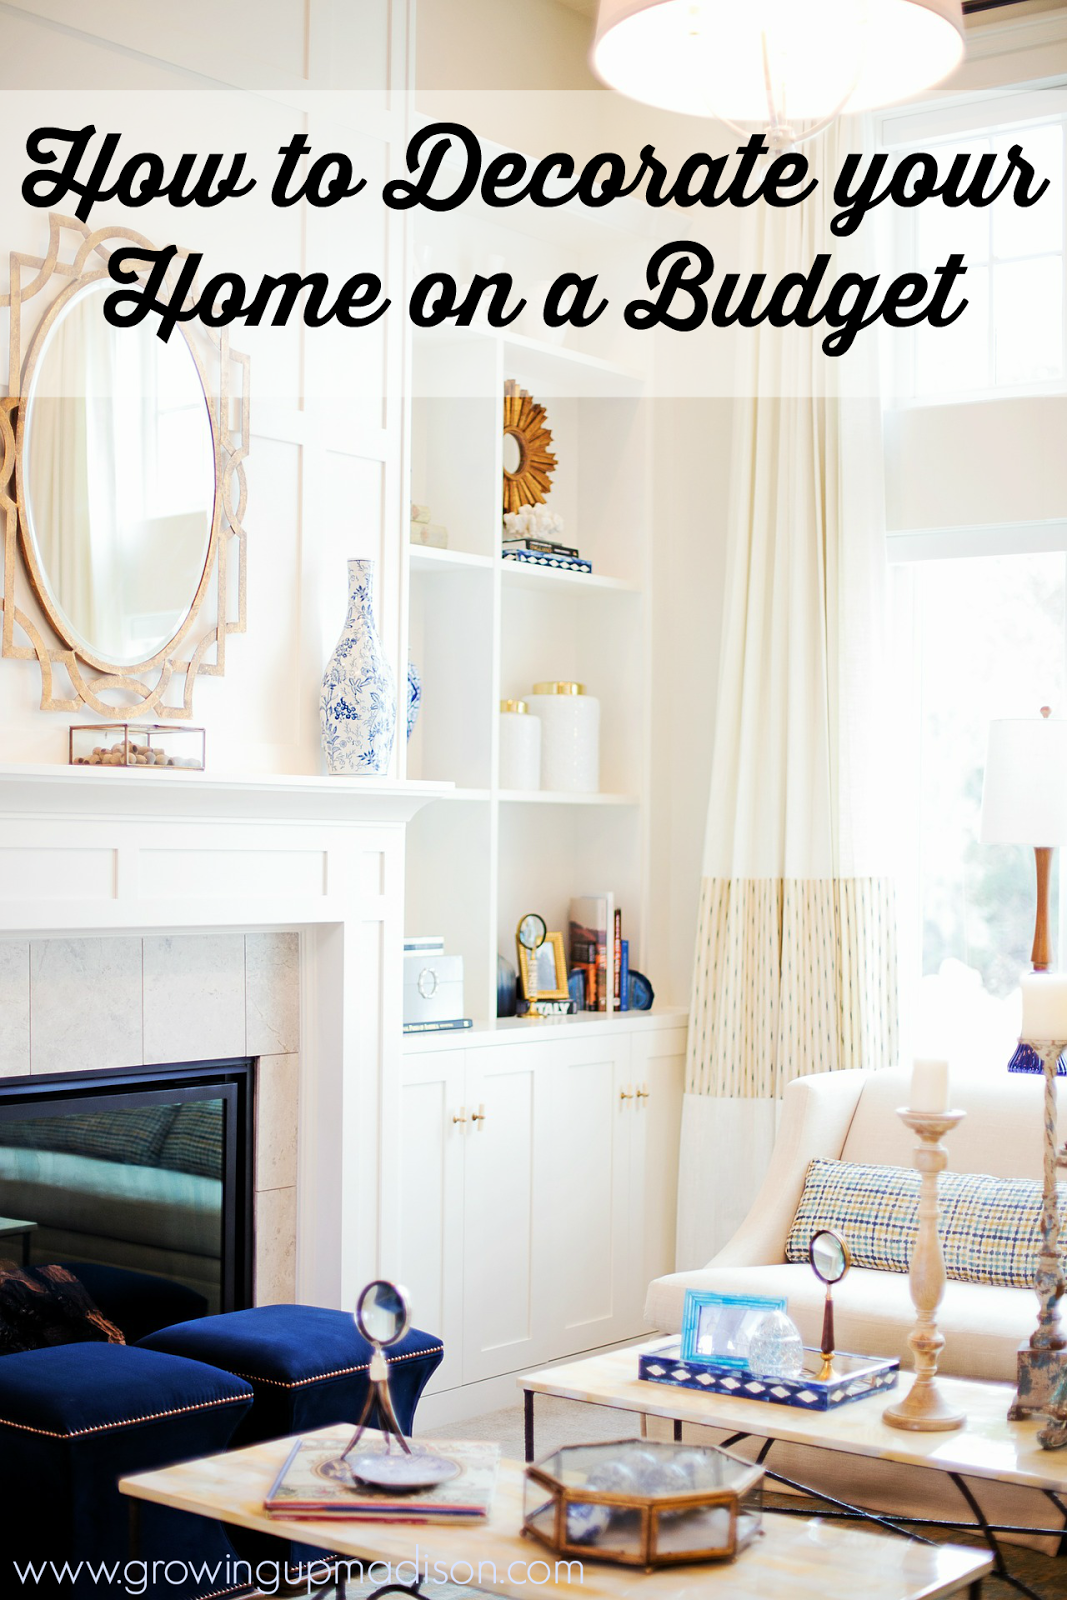 Today We Will Discuss How To Decorate Your Home On A Budget As A Means To Freshen Up Your Space Without Spending A Lot Of Money